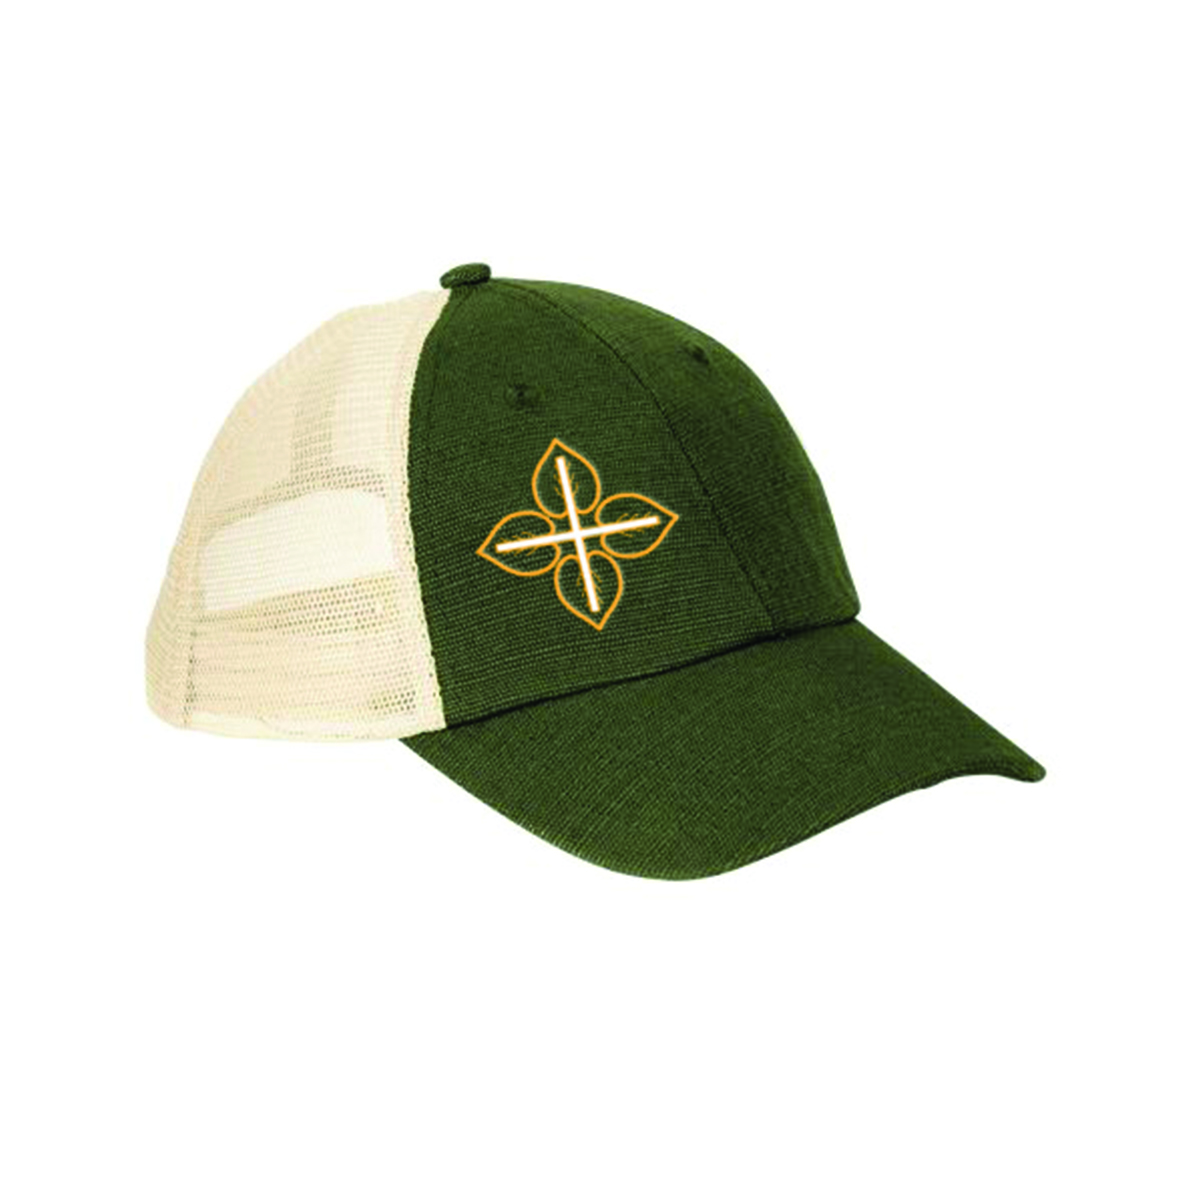 LOVE+EARTH HEMP MIX ECO TRUCKER CAP